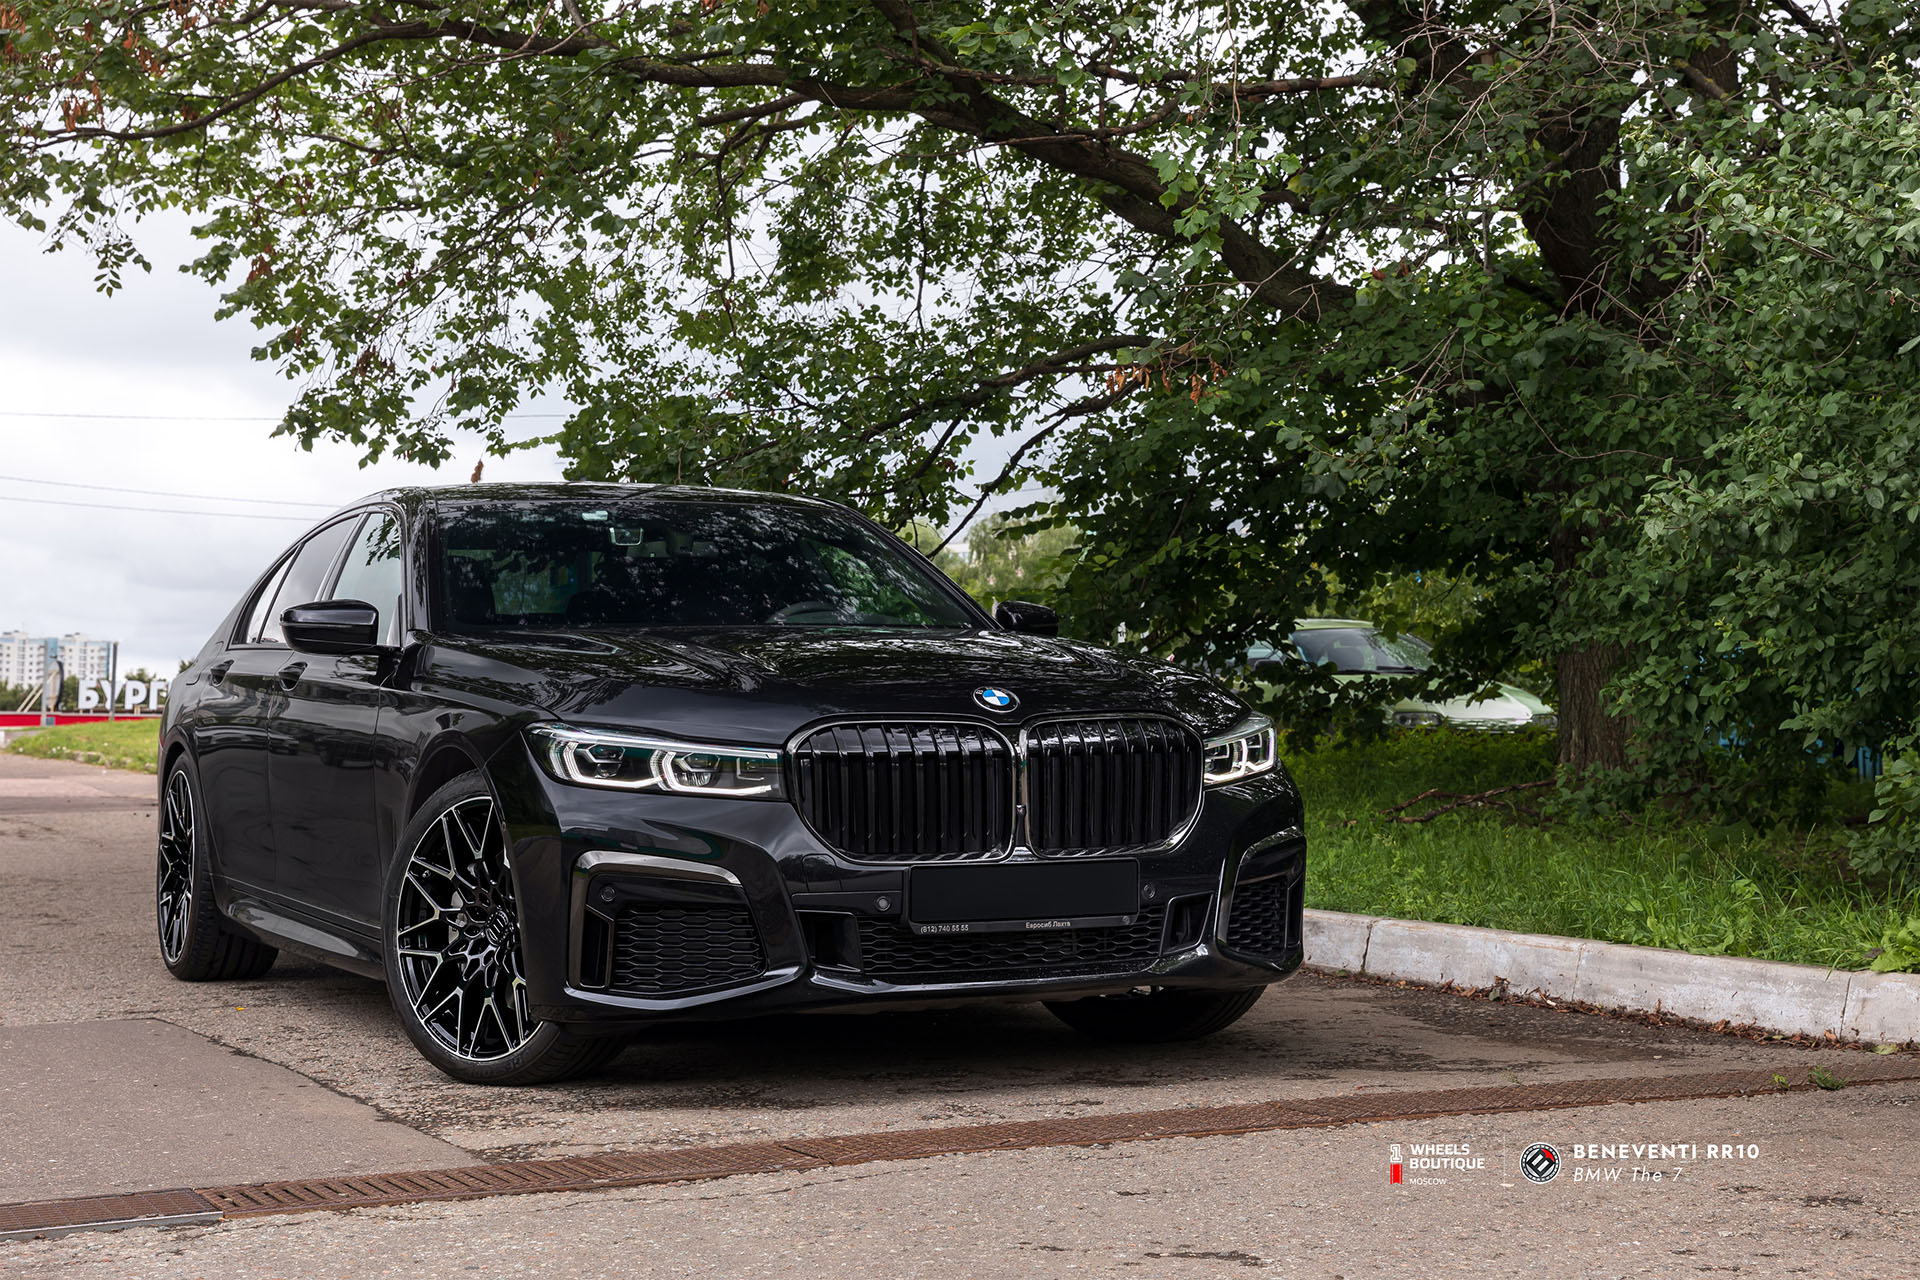 Beneventi RR10 & BMW 7-series